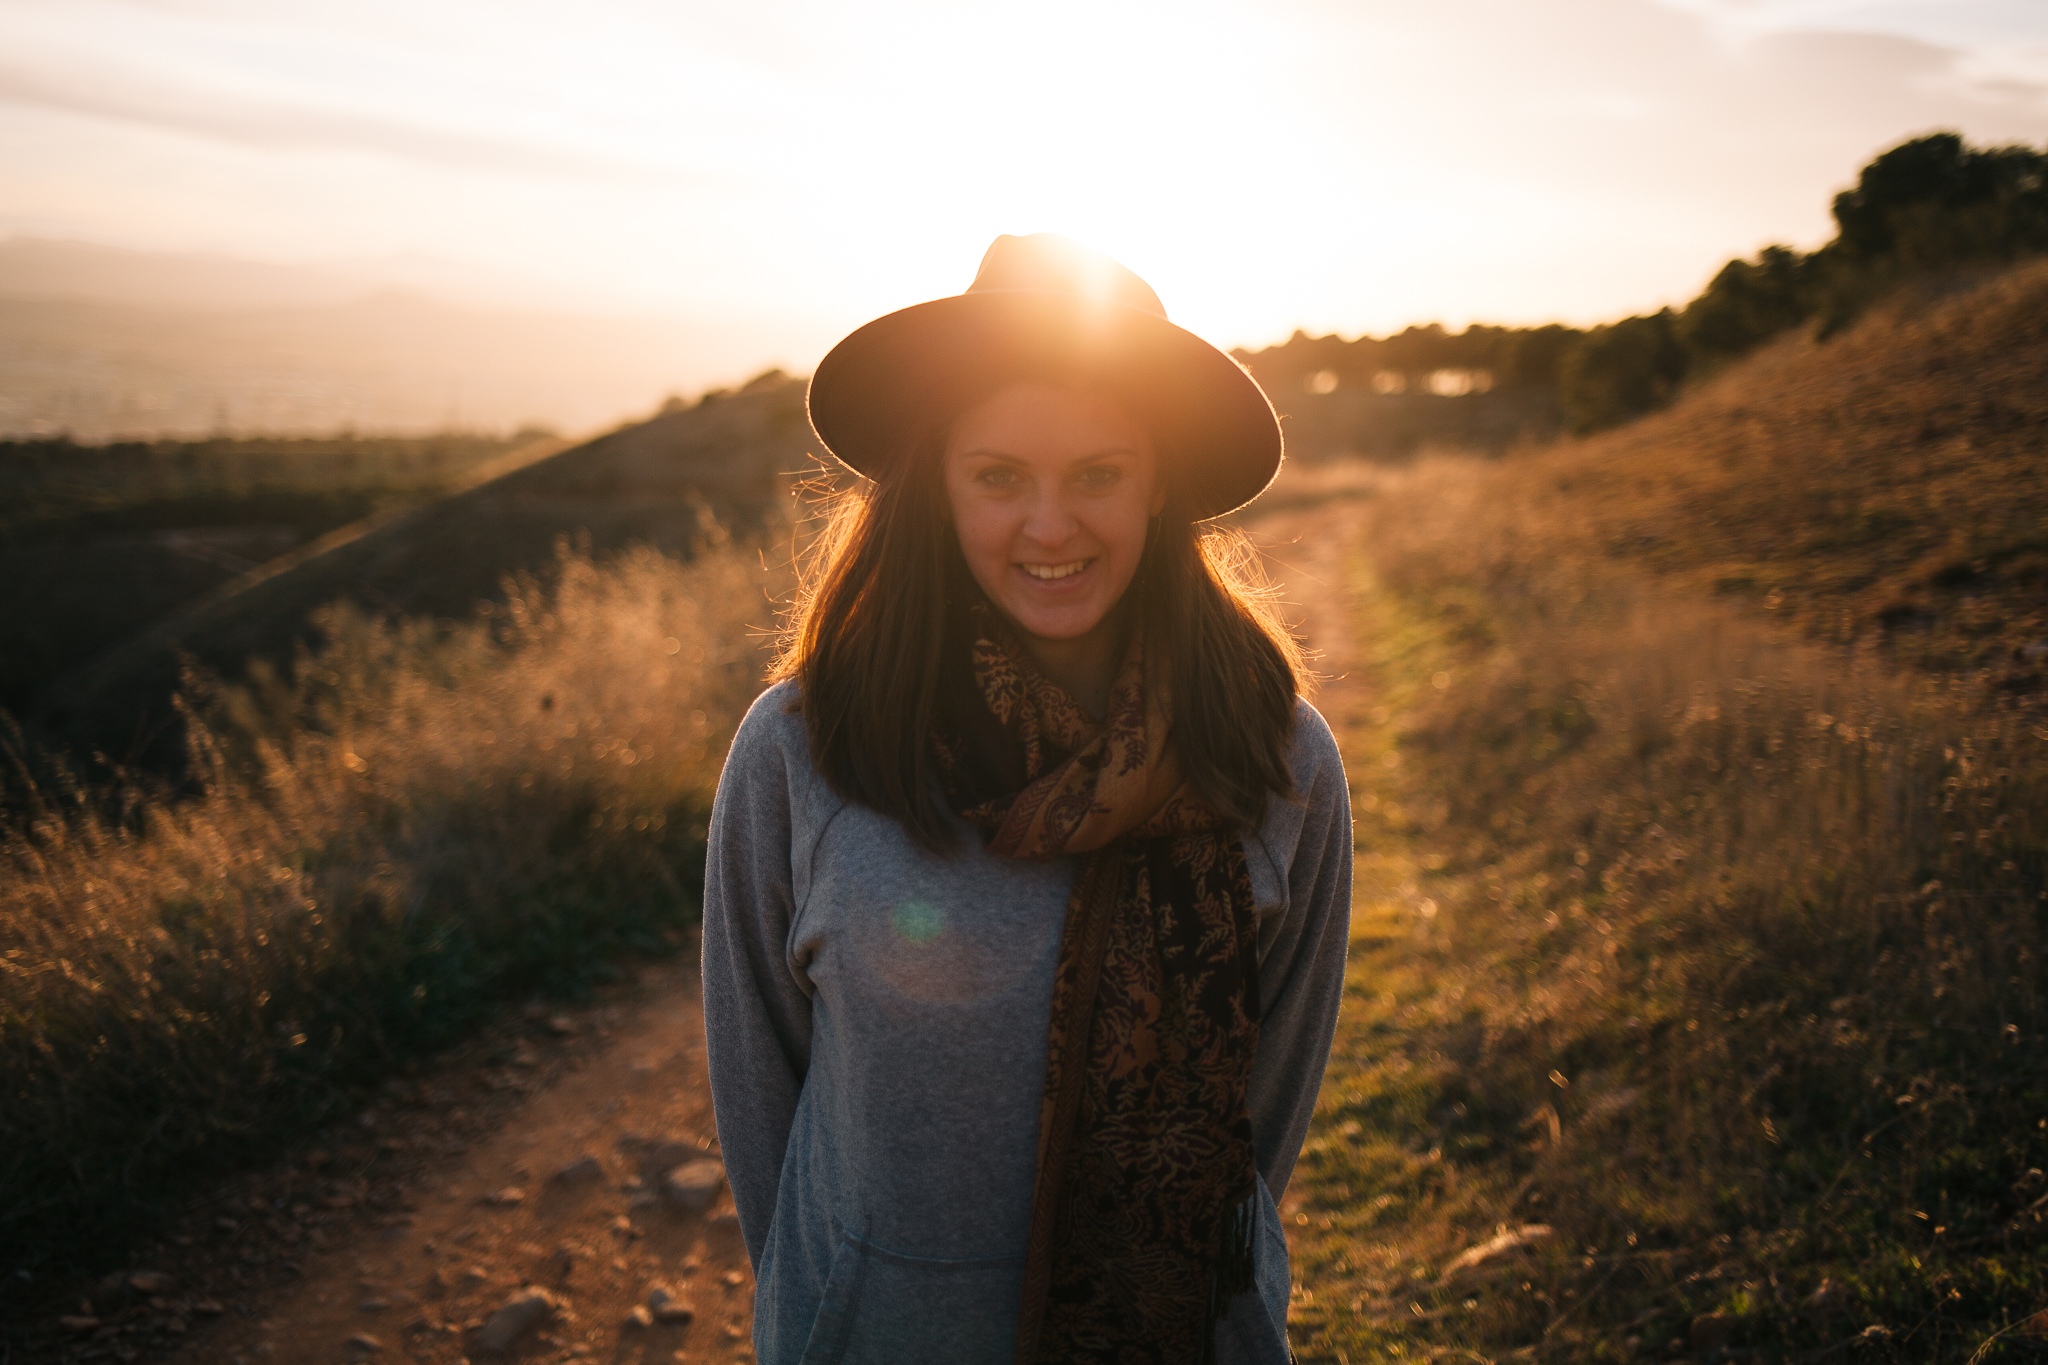 Lens flares with the Canon 35mm F2 also look pretty awesome, albeit less crazy!